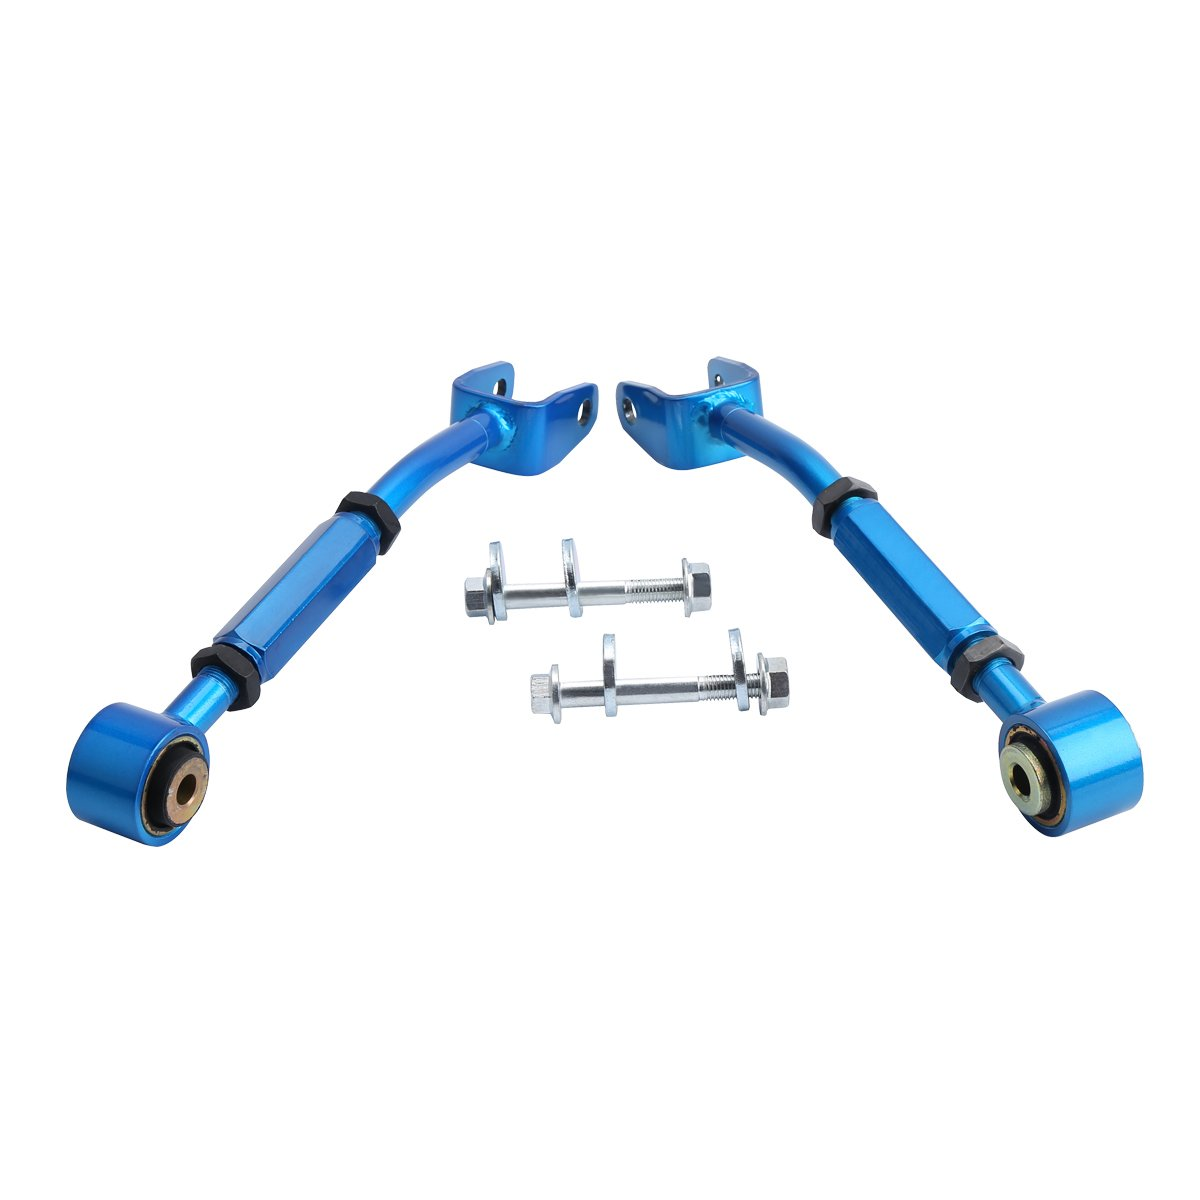 Rear Suspension Camber Arms Kit for 350Z 370Z Altima and G35 G37 Sedan Coupe Dynofit Rear Adjustable Link Toe Camber Arms Set for 350z 370z and Coupe Sedan Suspension Kit